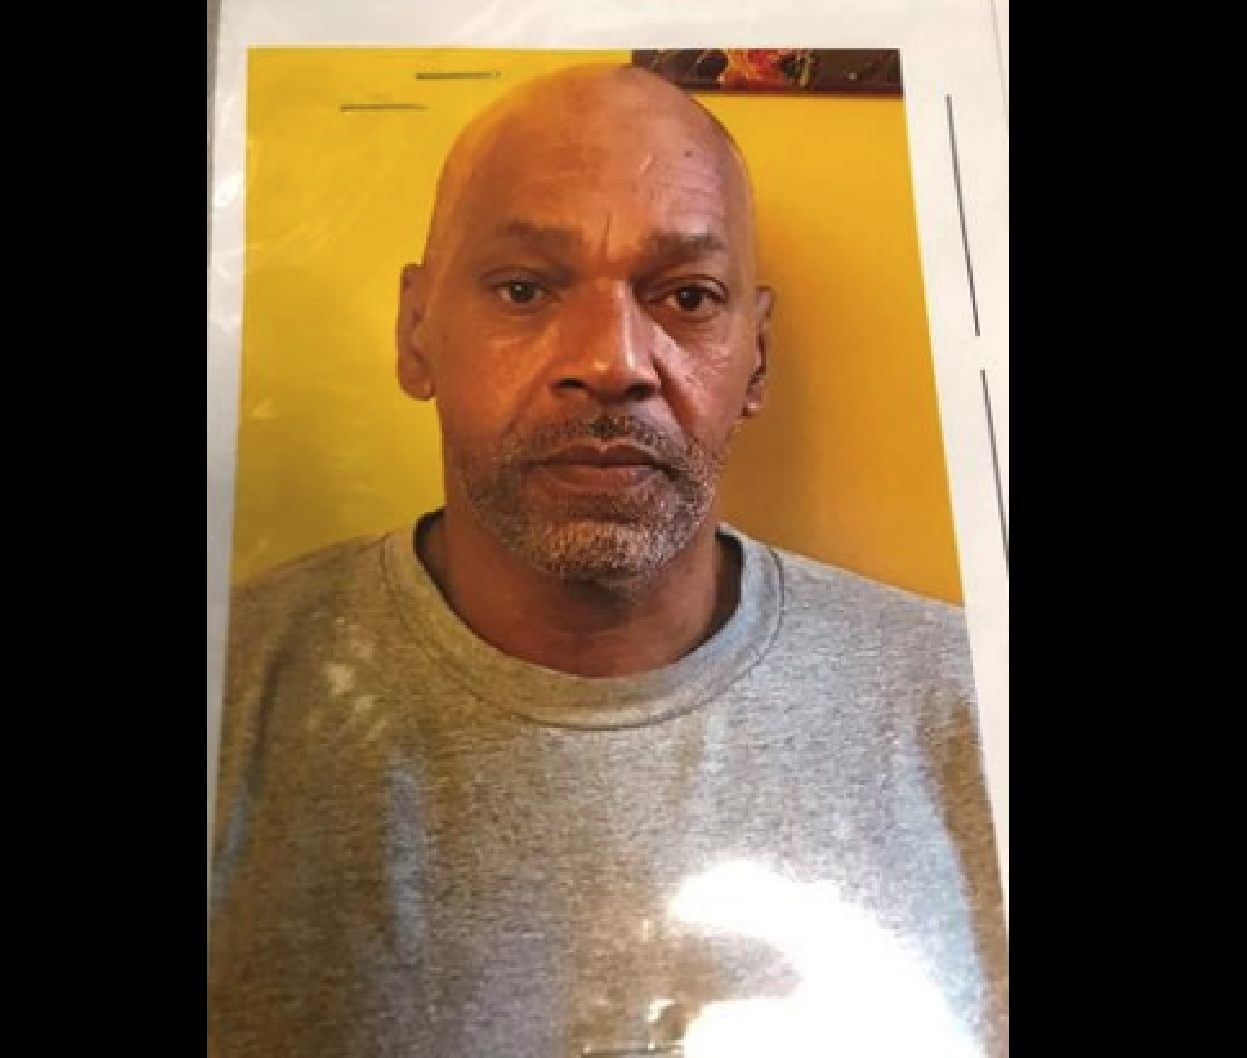 Bruce Moore has been missing from Englewood since June 8, according to Chicago police.